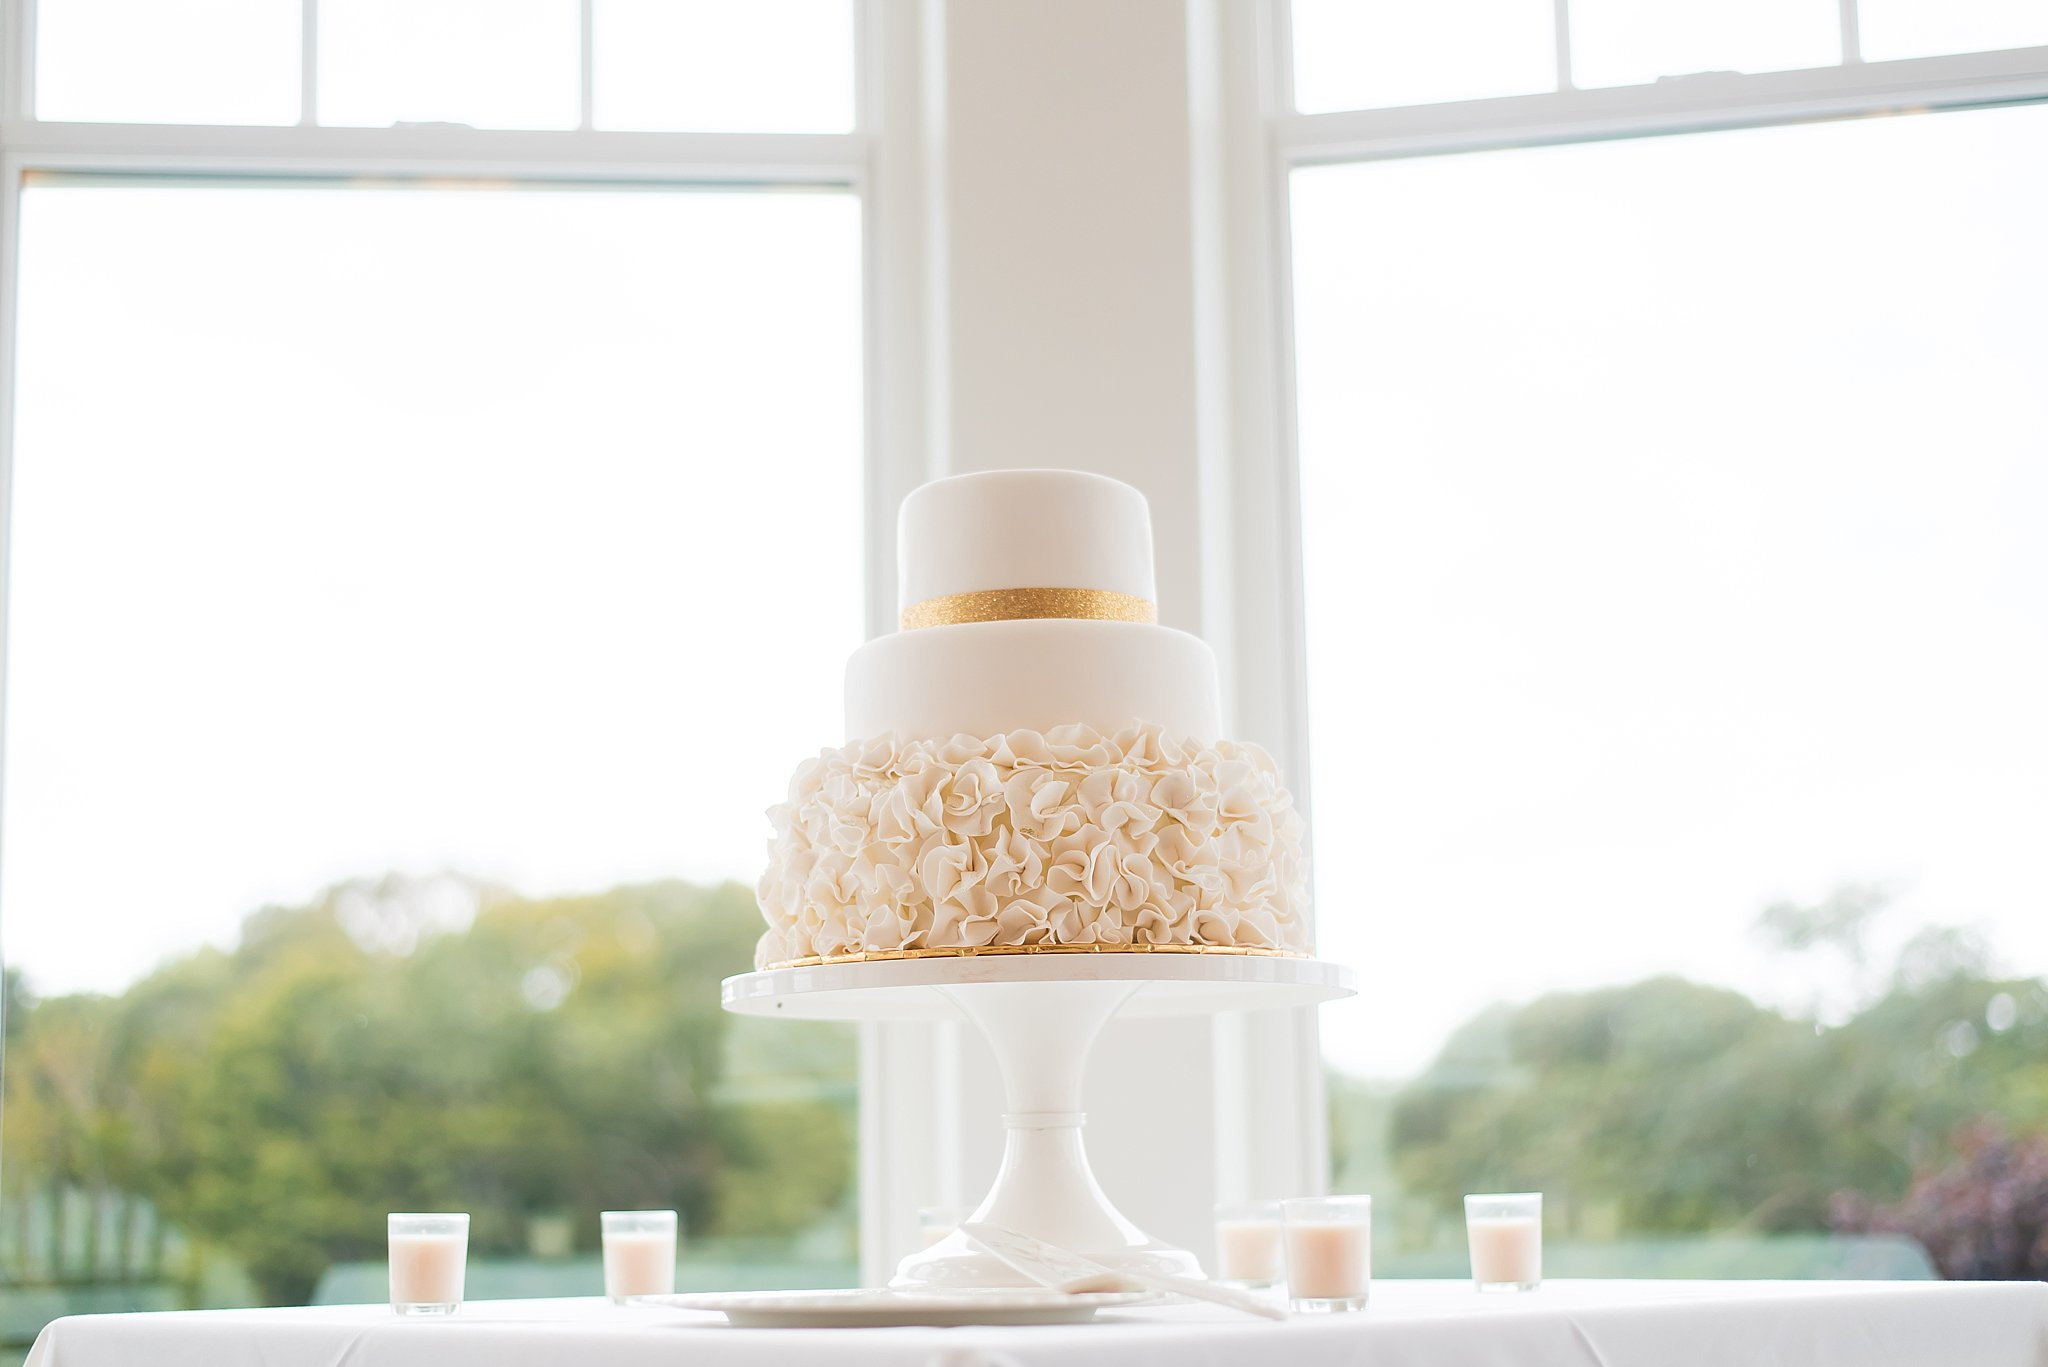 cape cod wedding cakes.jpg